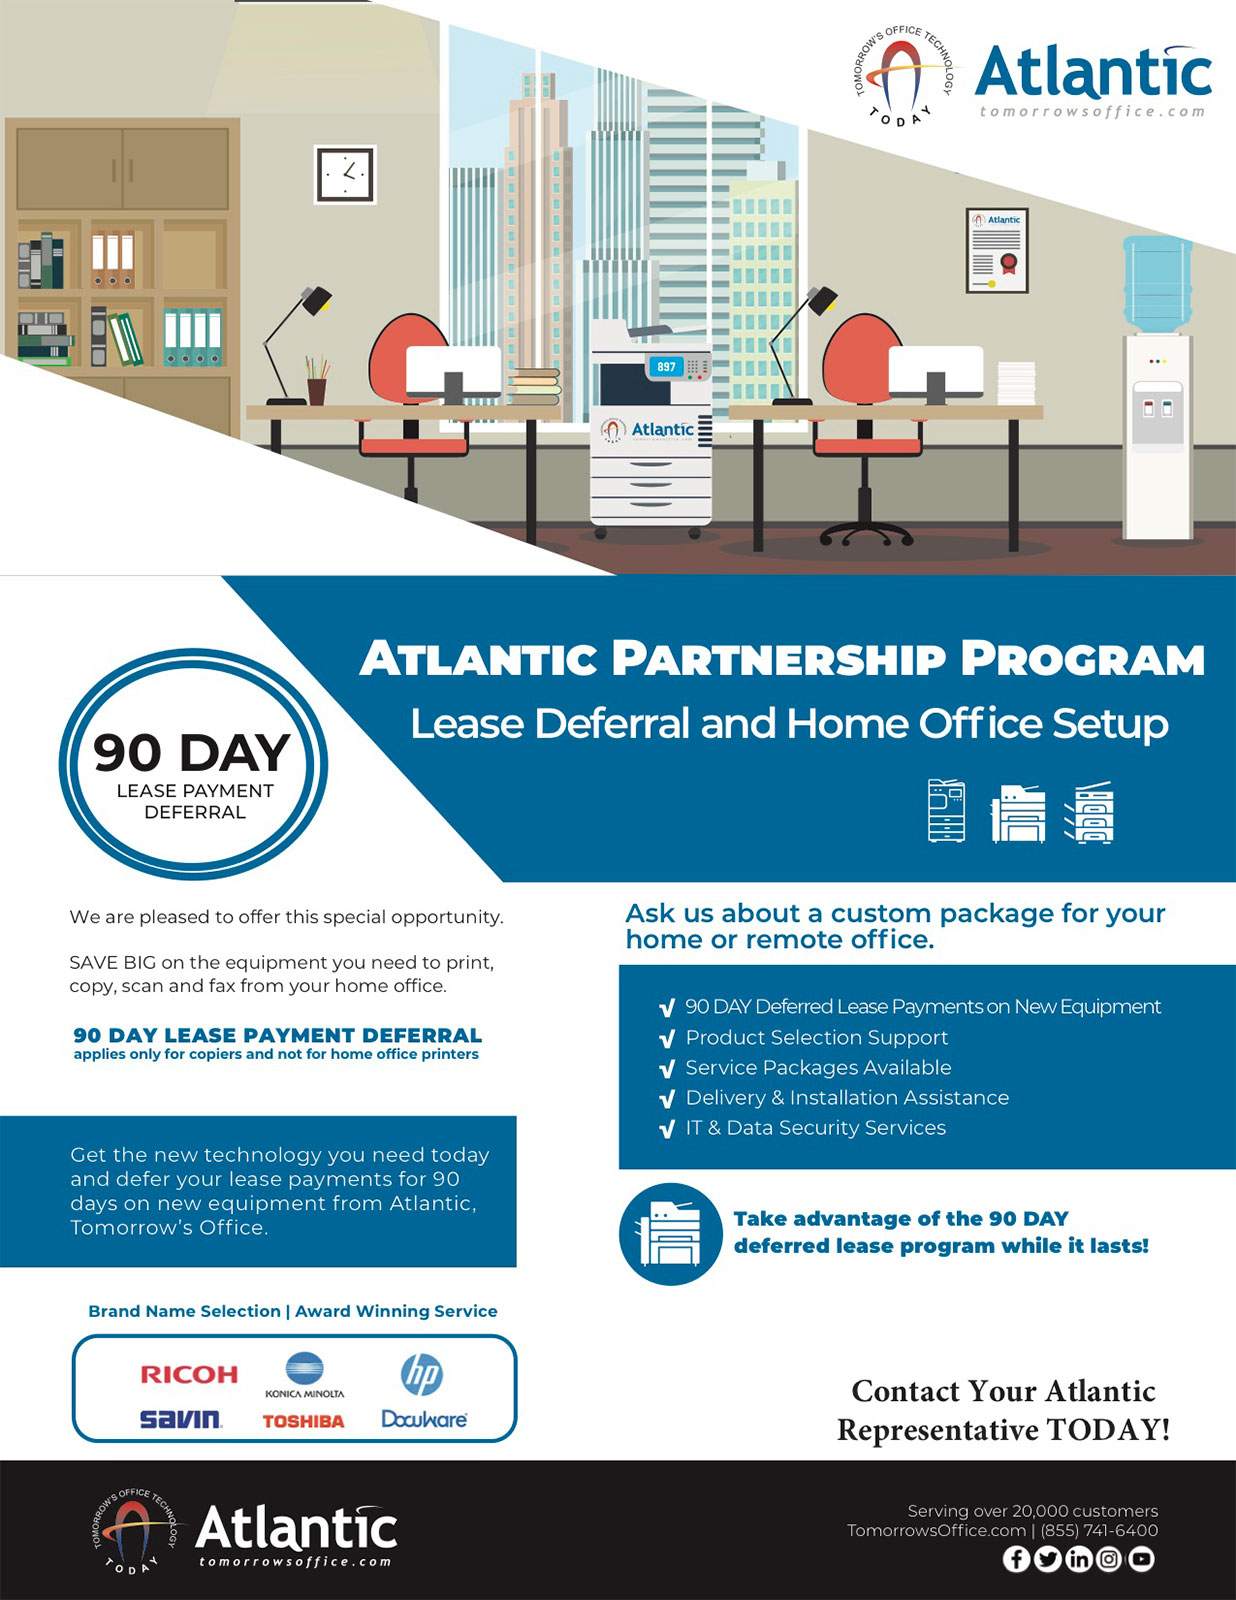 Partnership Program banner with text. Lease deferral and home office set up. 90 day lease payment deferral.